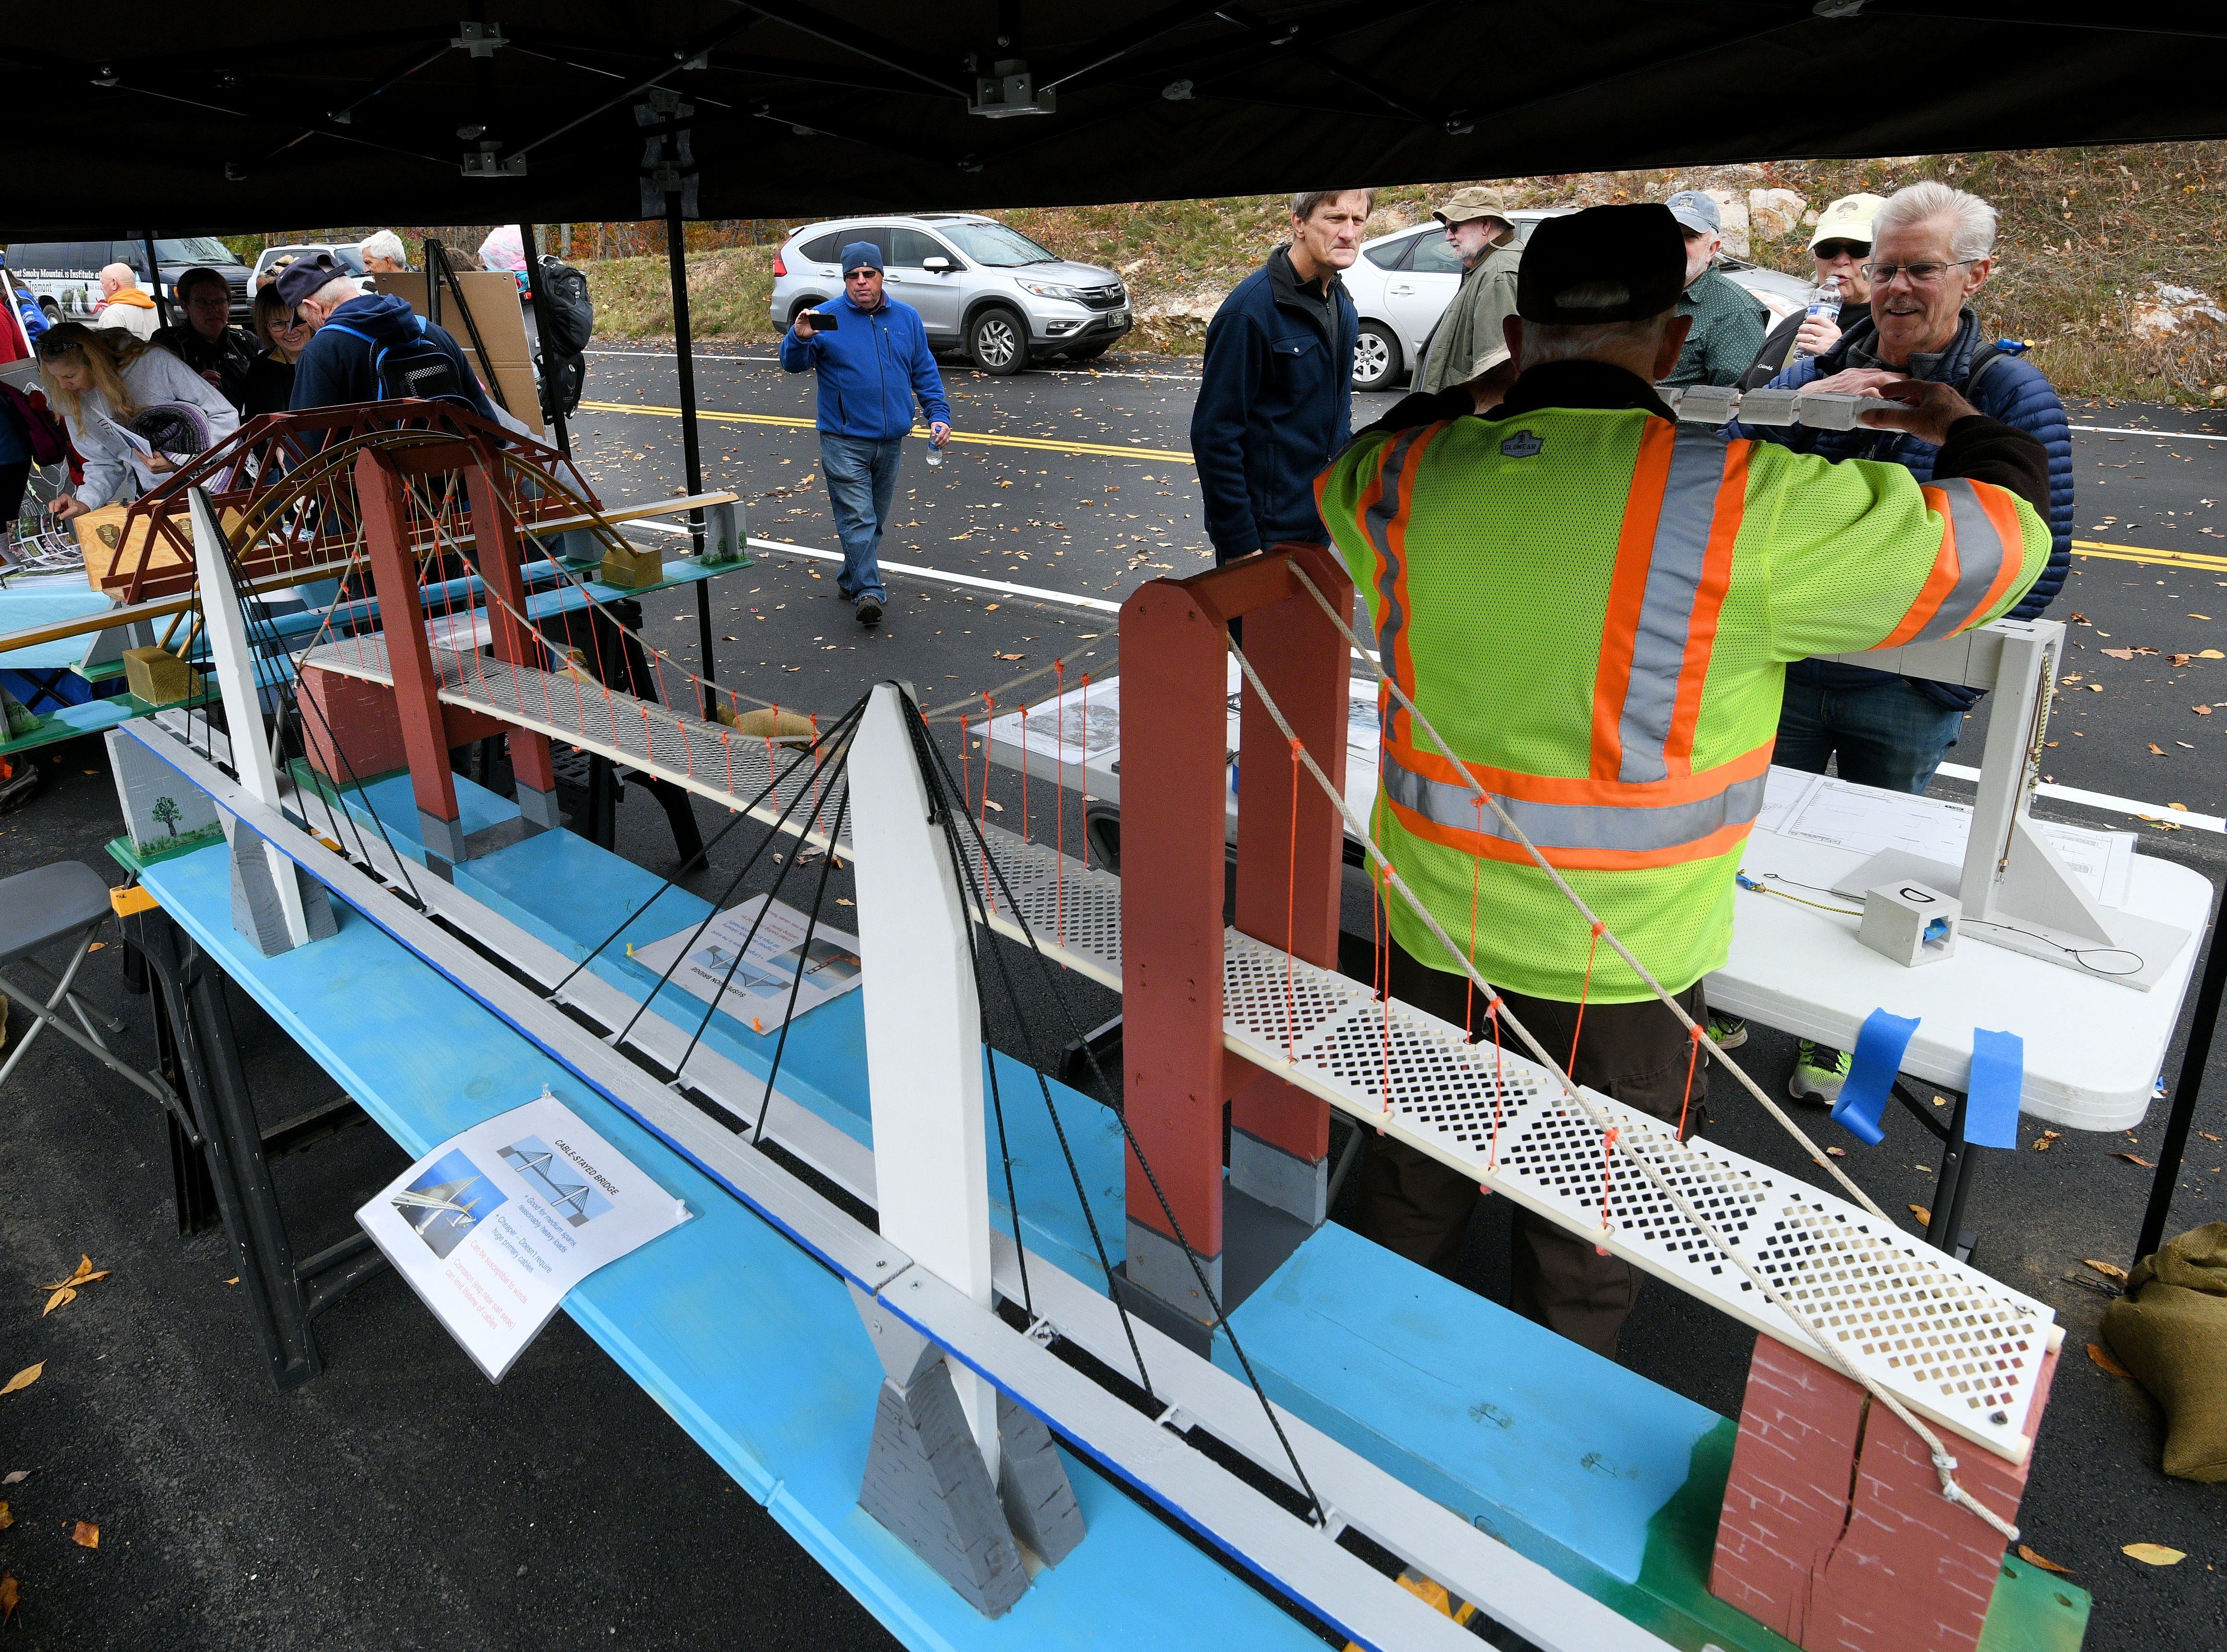 Volunteers from the National Park Service show visitors how the bridges were built during a Community Day held Thursday, Nov. 8, 2018 for the public to experience the bridges along the 1.65-mile section known as the 'Missing Link' before it opens to motorists and cyclists Saturday.